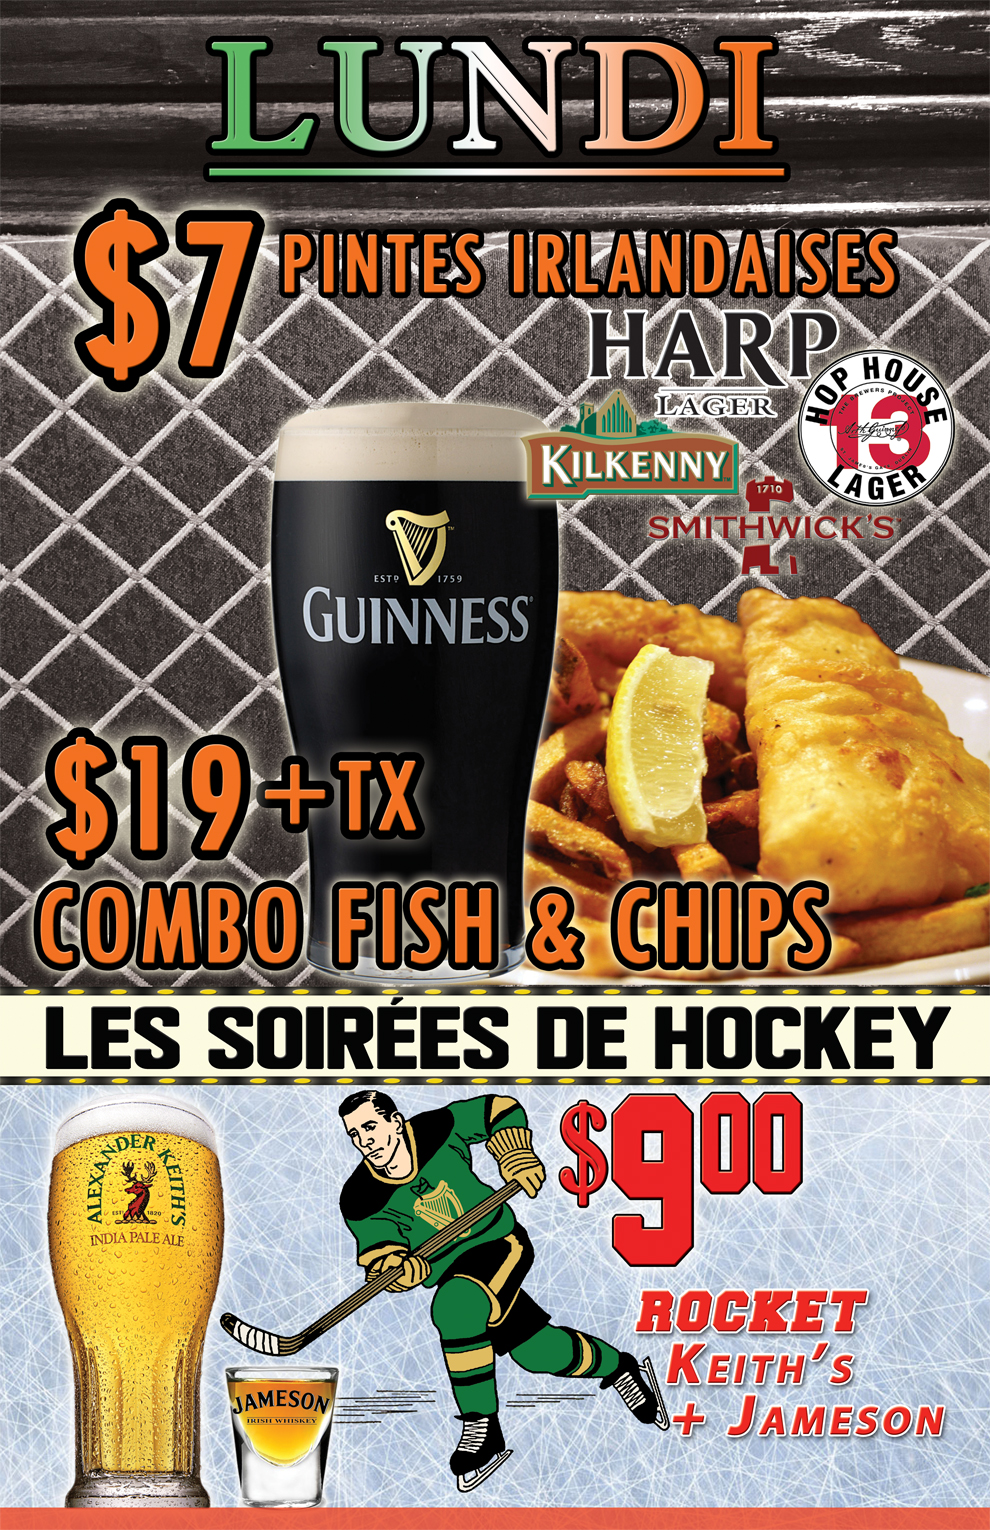 Monday Irish Pints Fish and Chips FR RGB